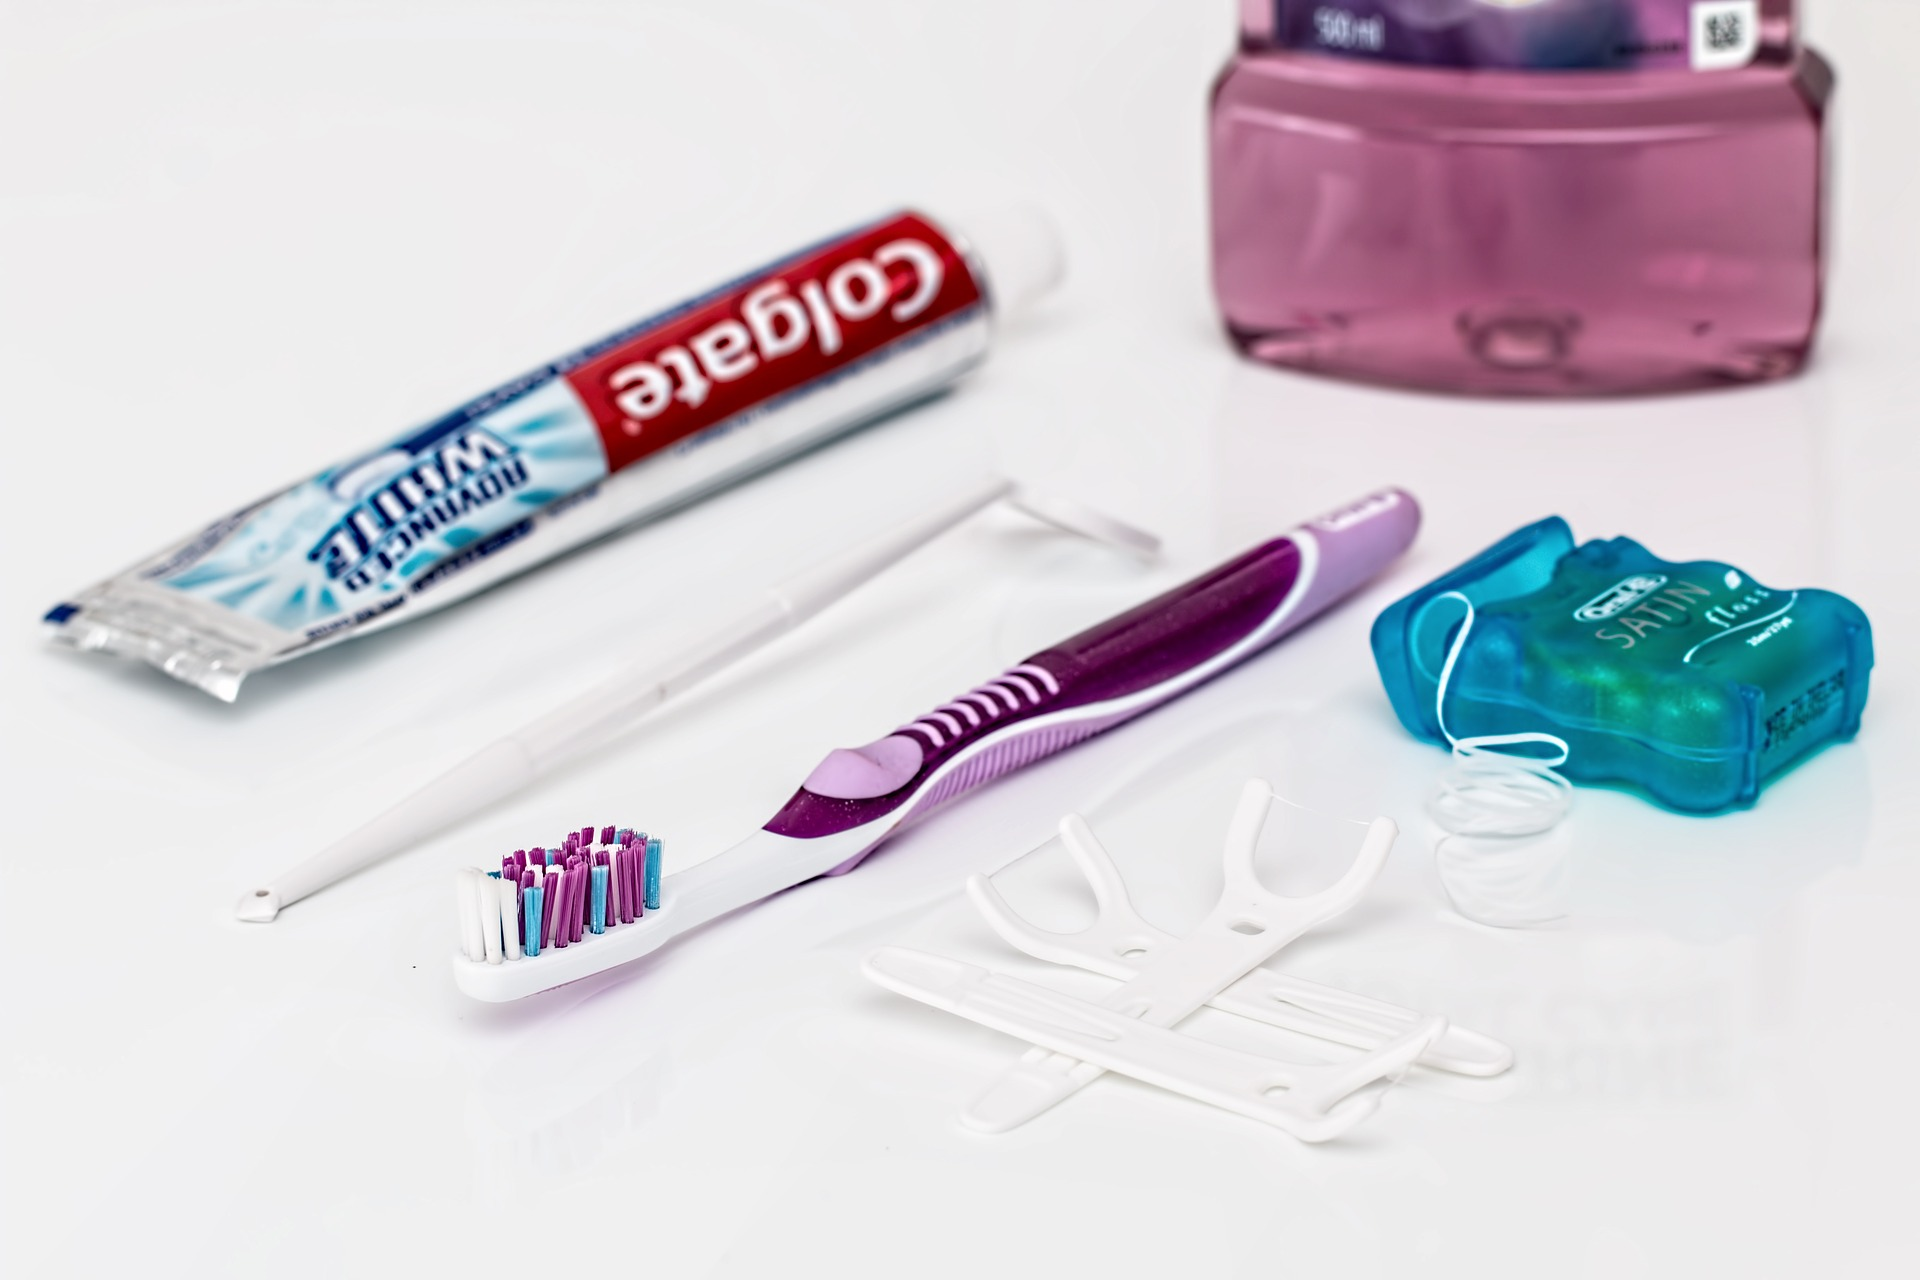 toothbrush, toothpaste, floss, and mouthwash